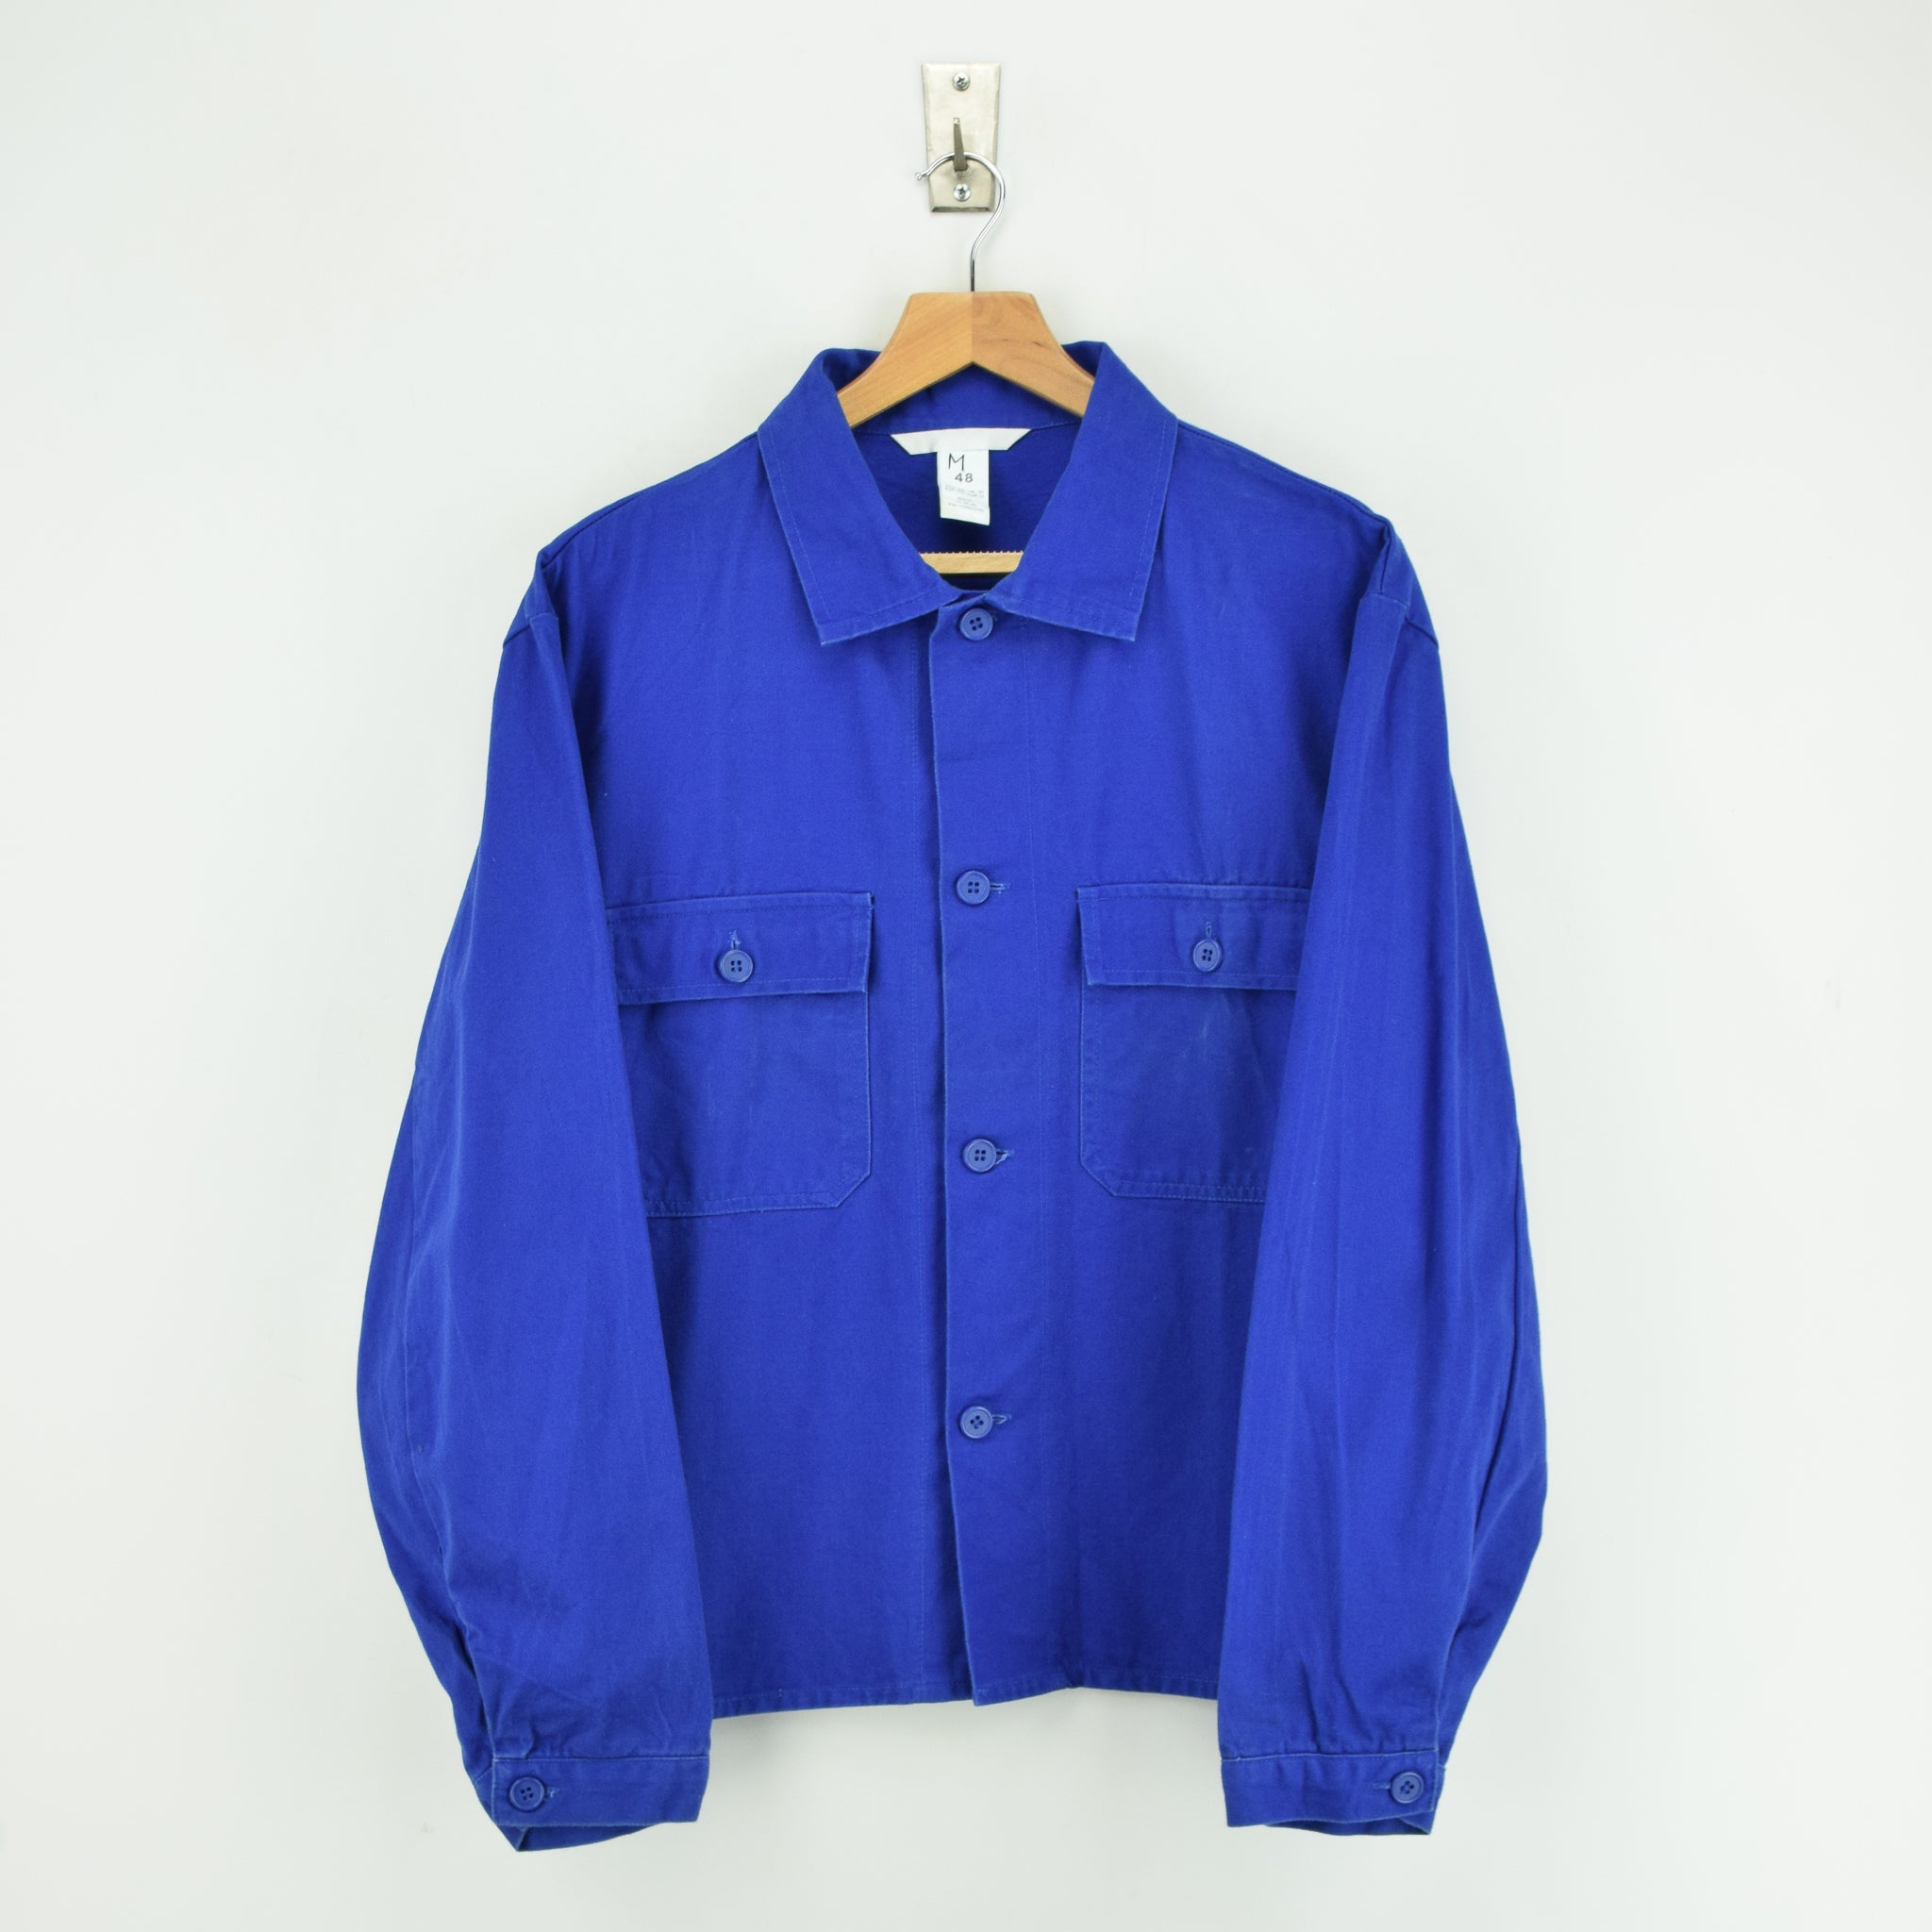 Vintage Bright Blue French Style Worker Sanforized Chore Shirt Jacket M / L front